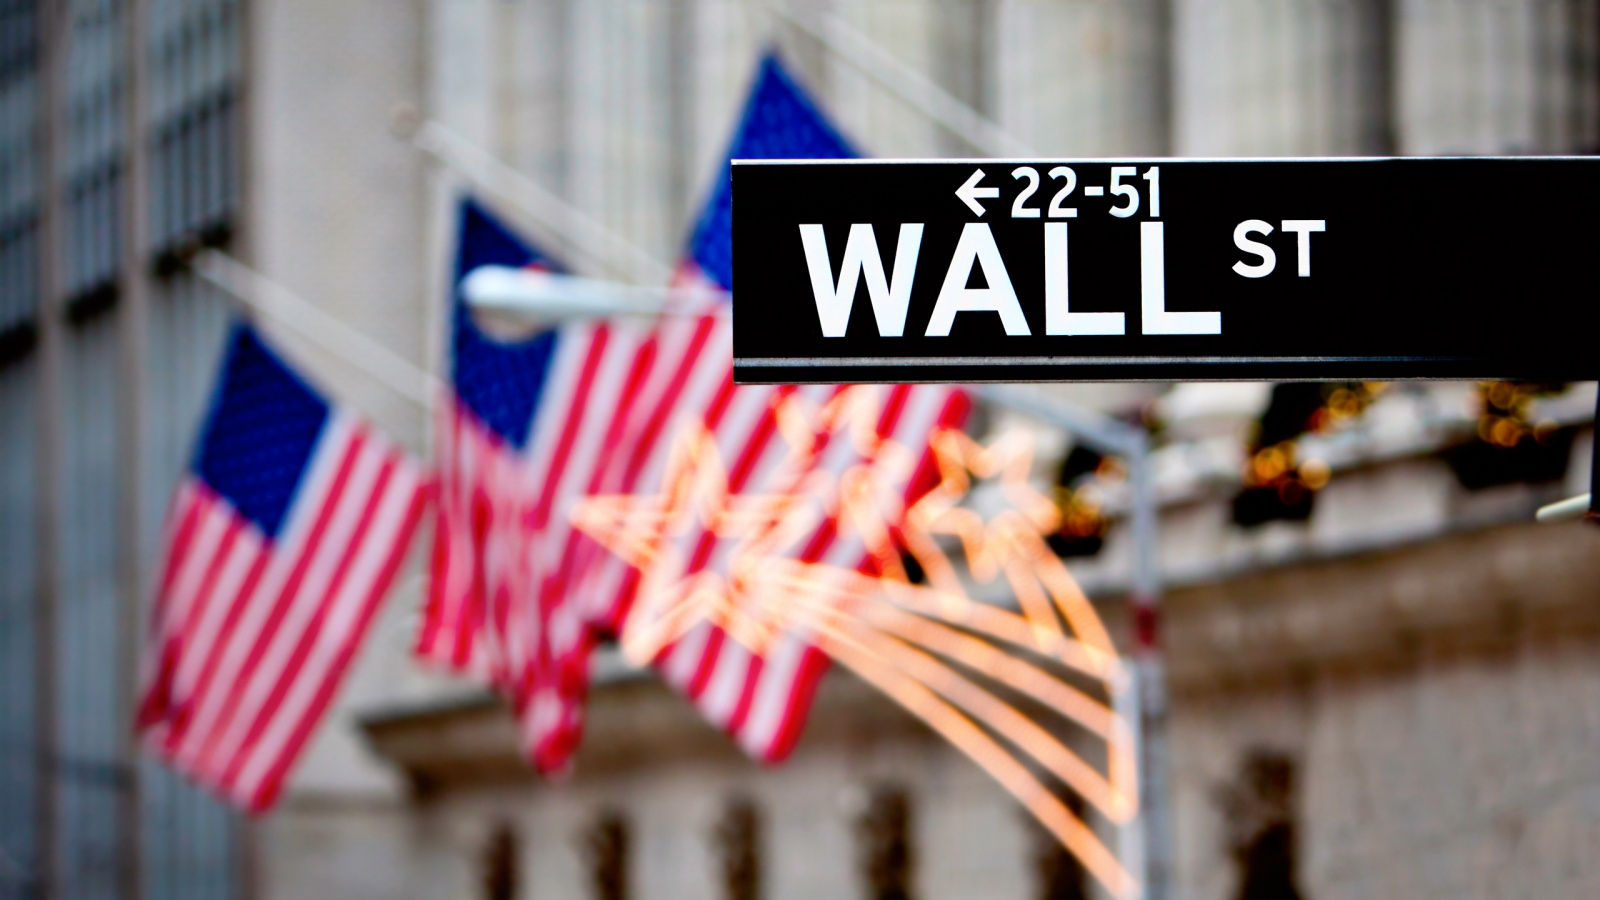 Wall Street Wallpaper